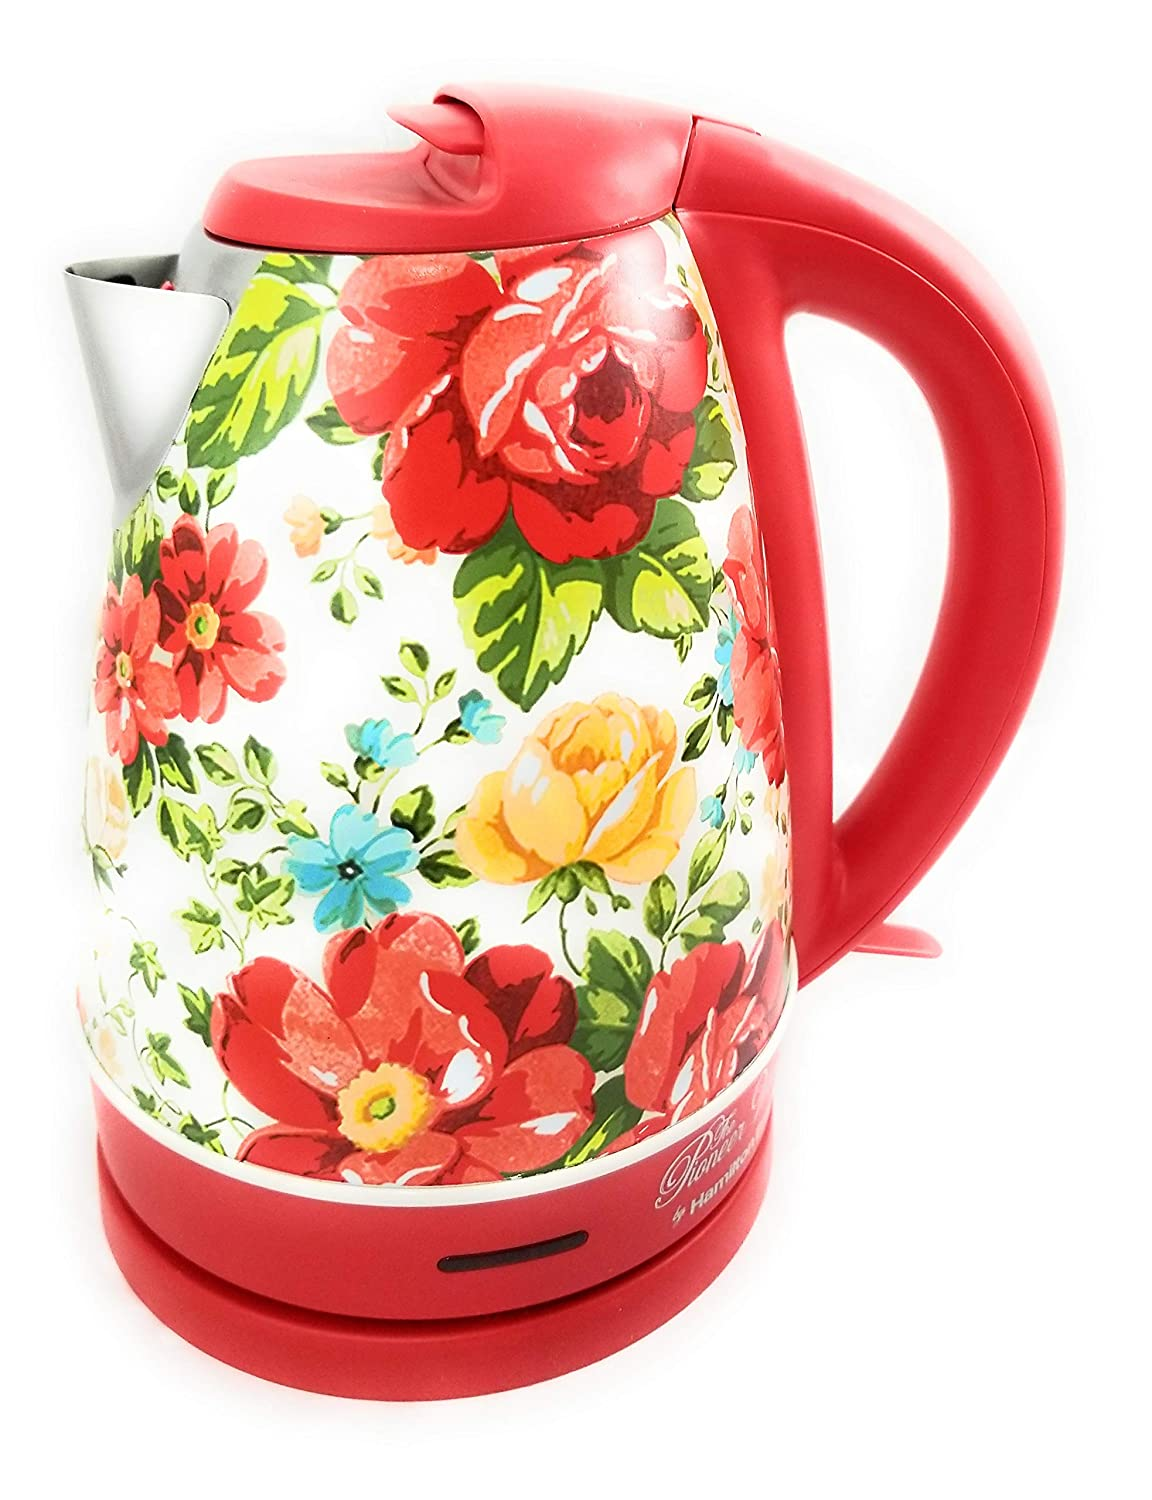 The Pioneer Woman 1.7 Liter Vintage Floral Electric Kettle, Model 40970 by Hamilton Beach